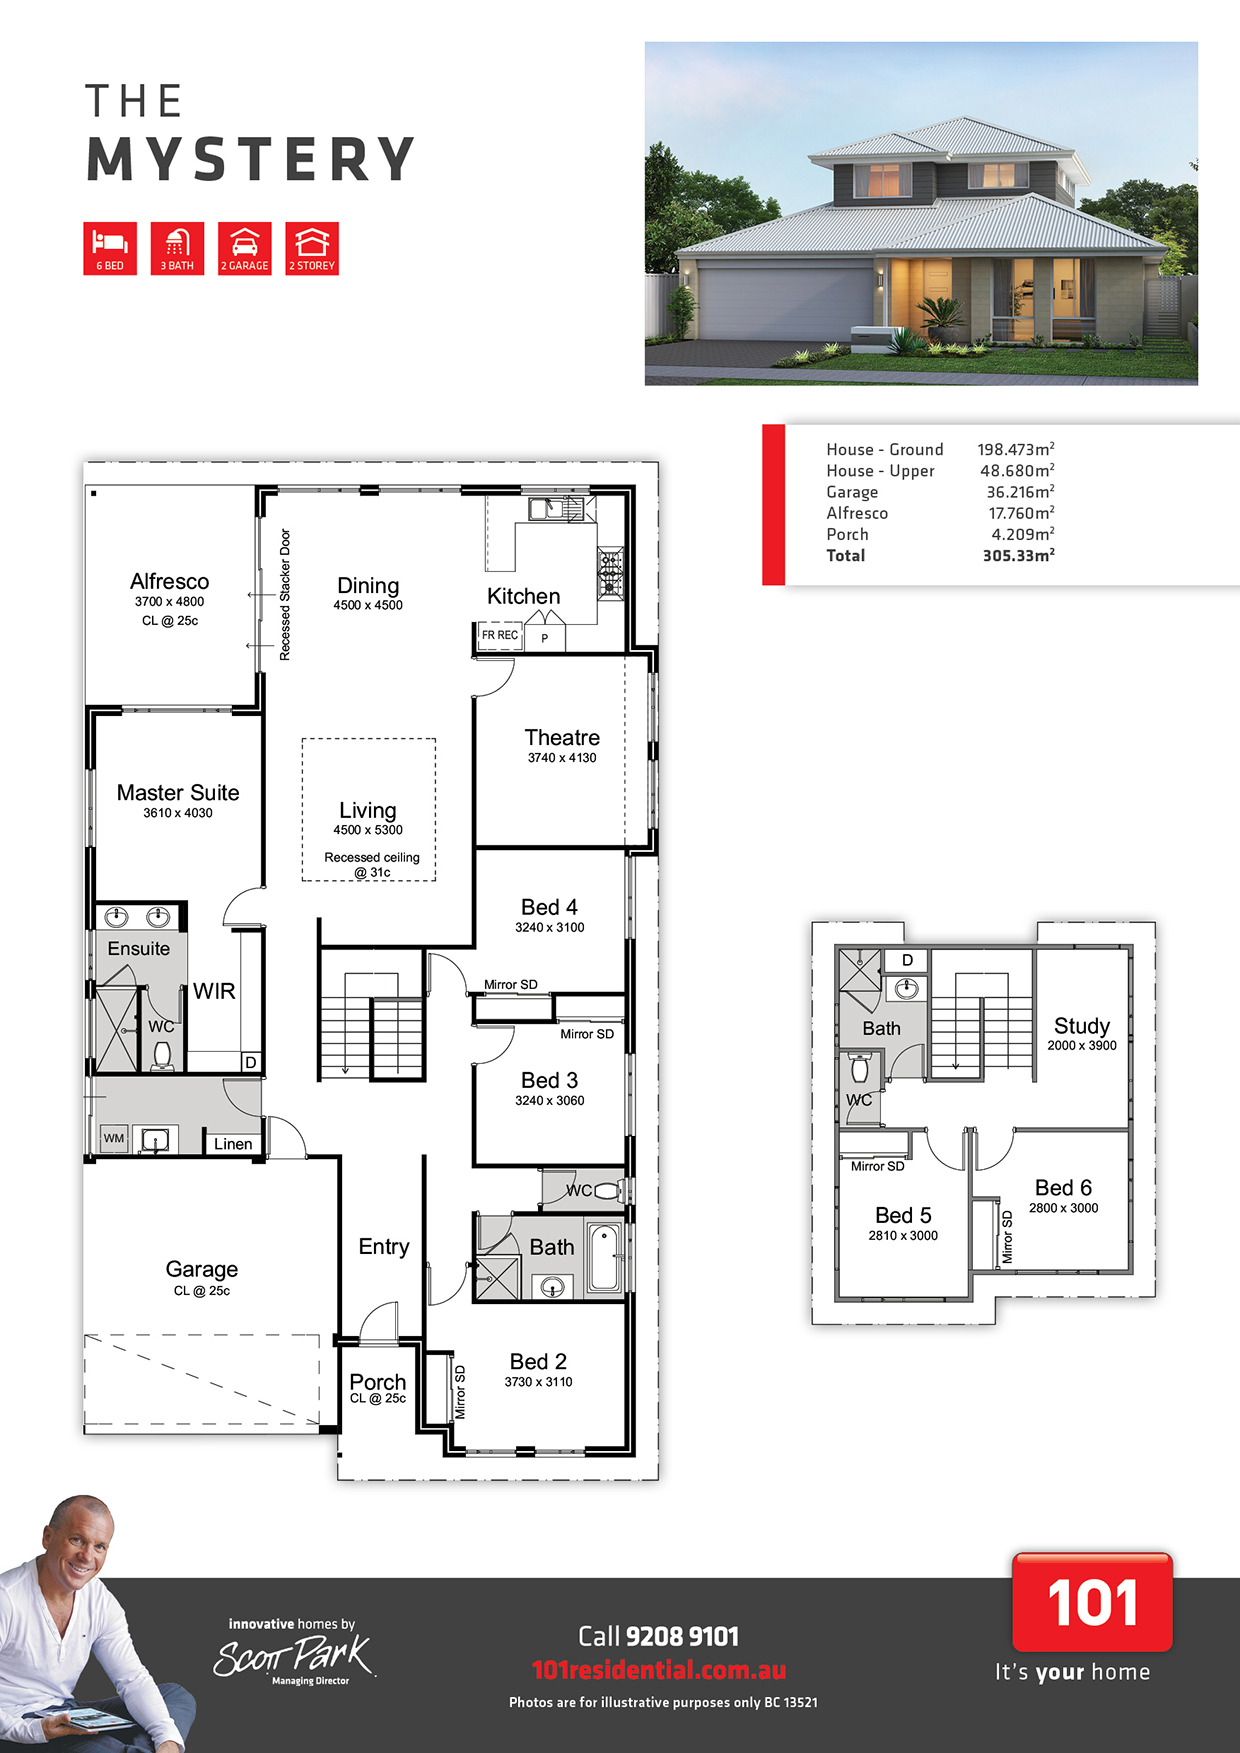 101J9226 - THE MYSTERY FLOORPLAN_A4_FA